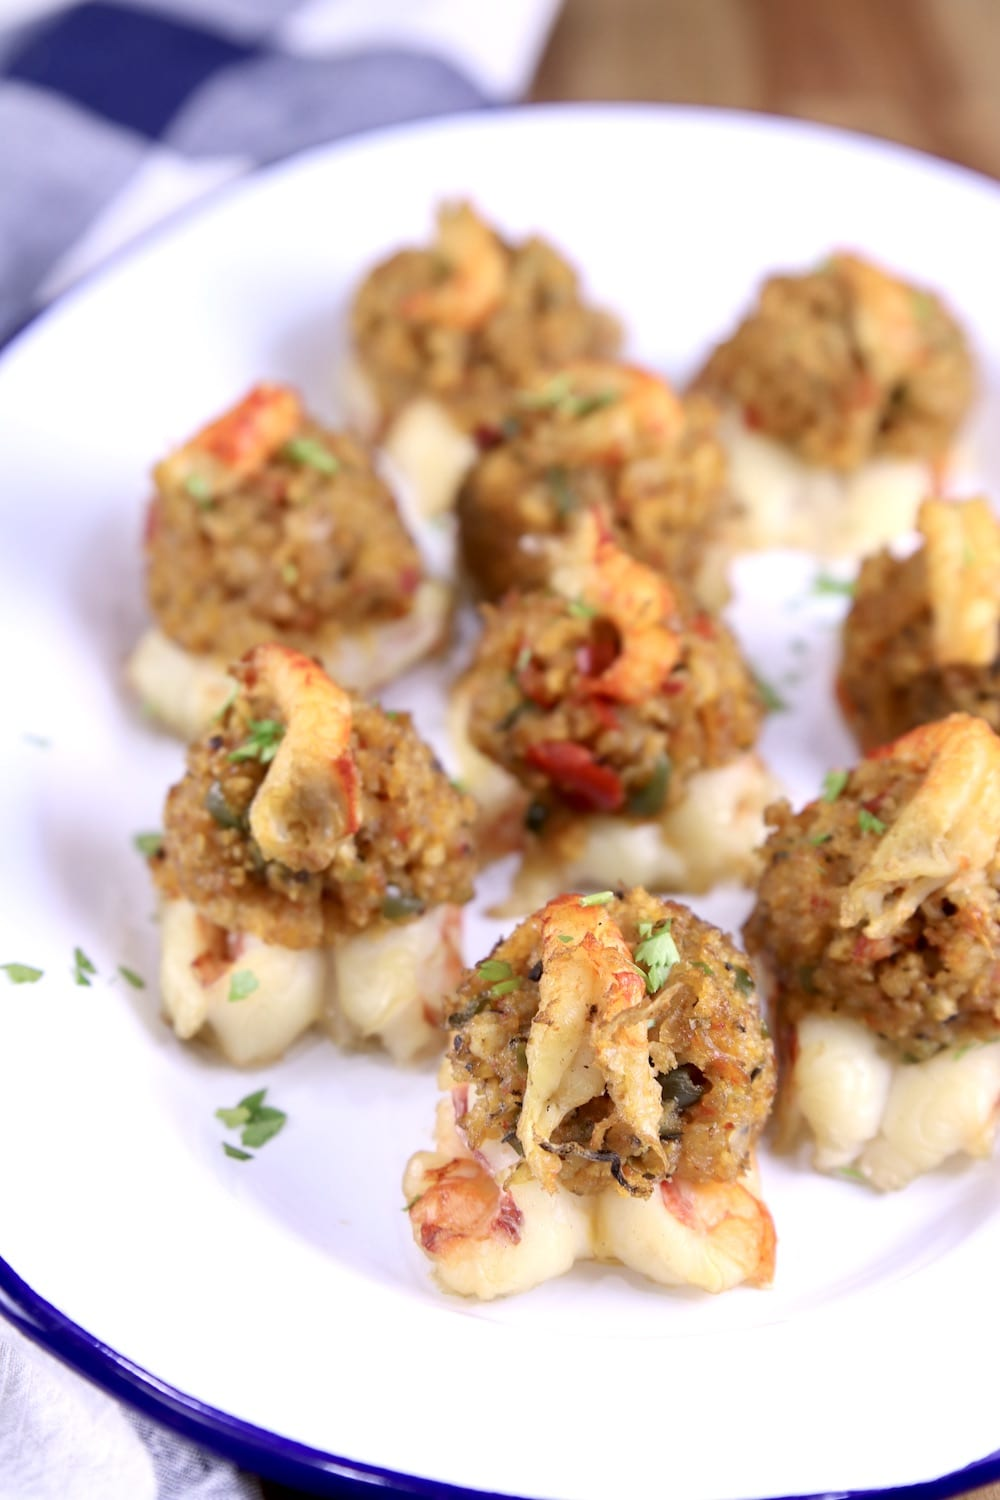 Stuffed Shrimp with crawfish stuffing on a platter, blue and white check towel in background